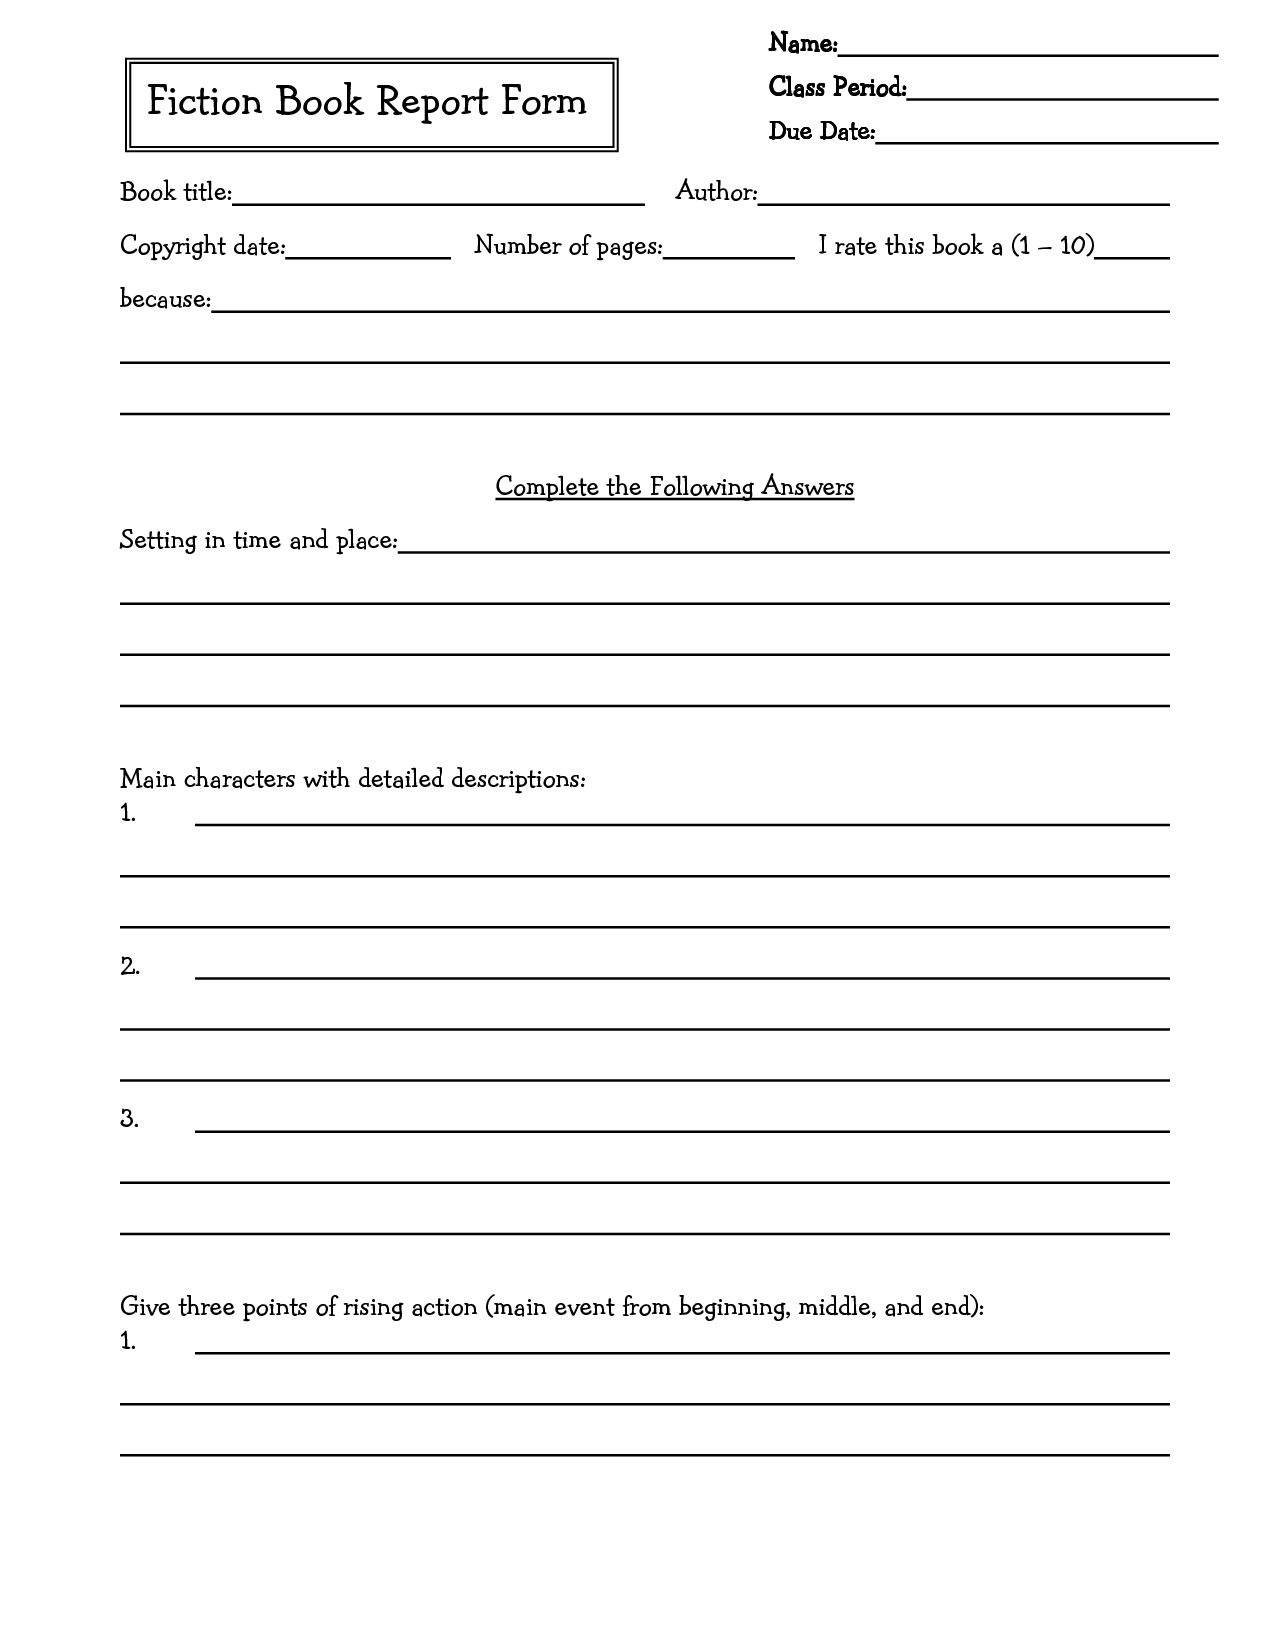 Middle School Book Report Brochure. 6Th Grade | 7Th Grade | 8Th | Book Report Printable Worksheets